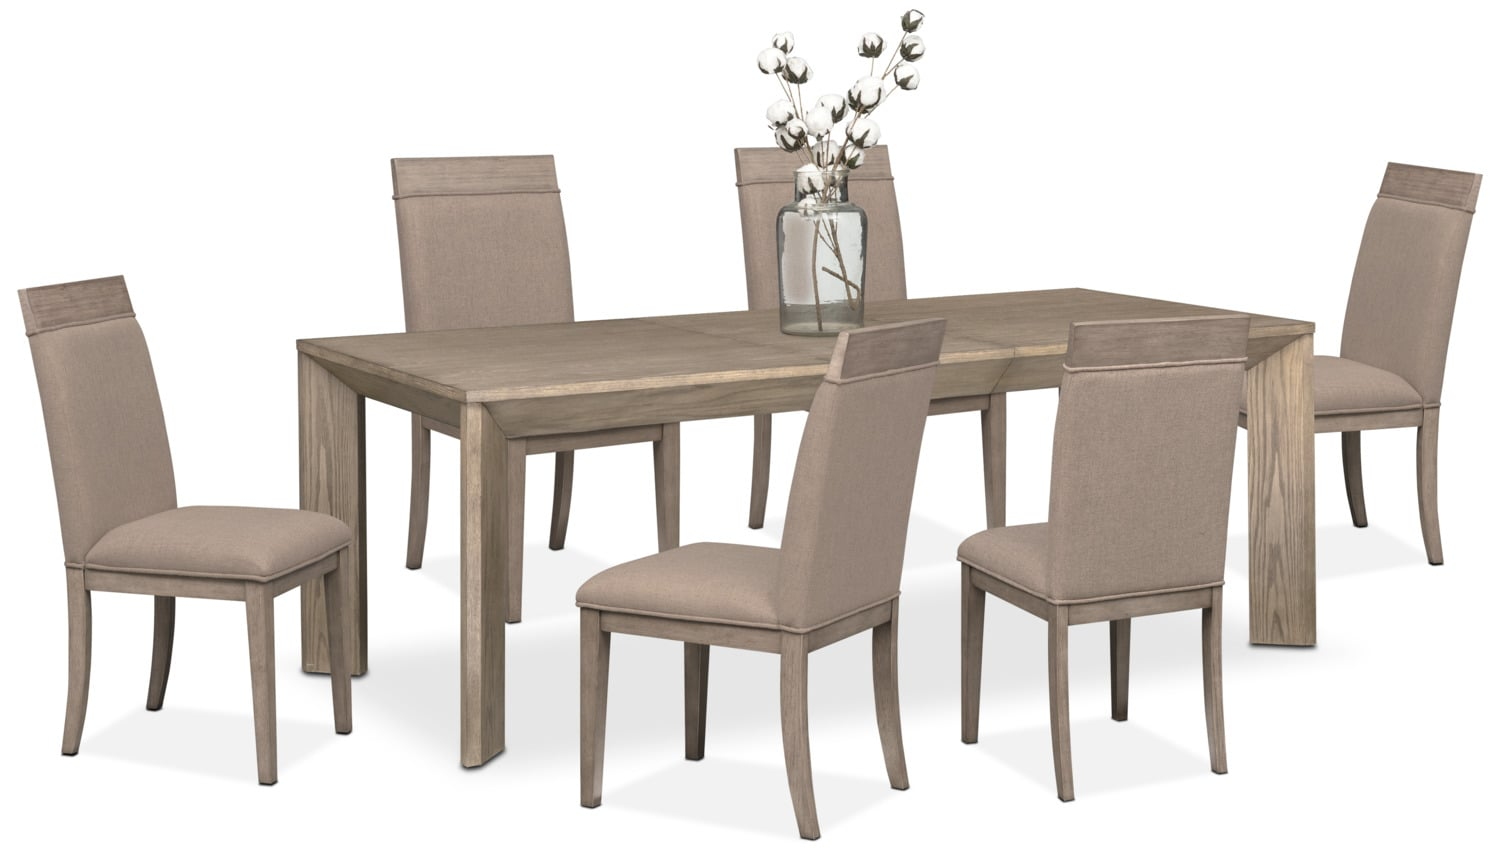 Gavin Table and 6 Side Chairs - Graystone